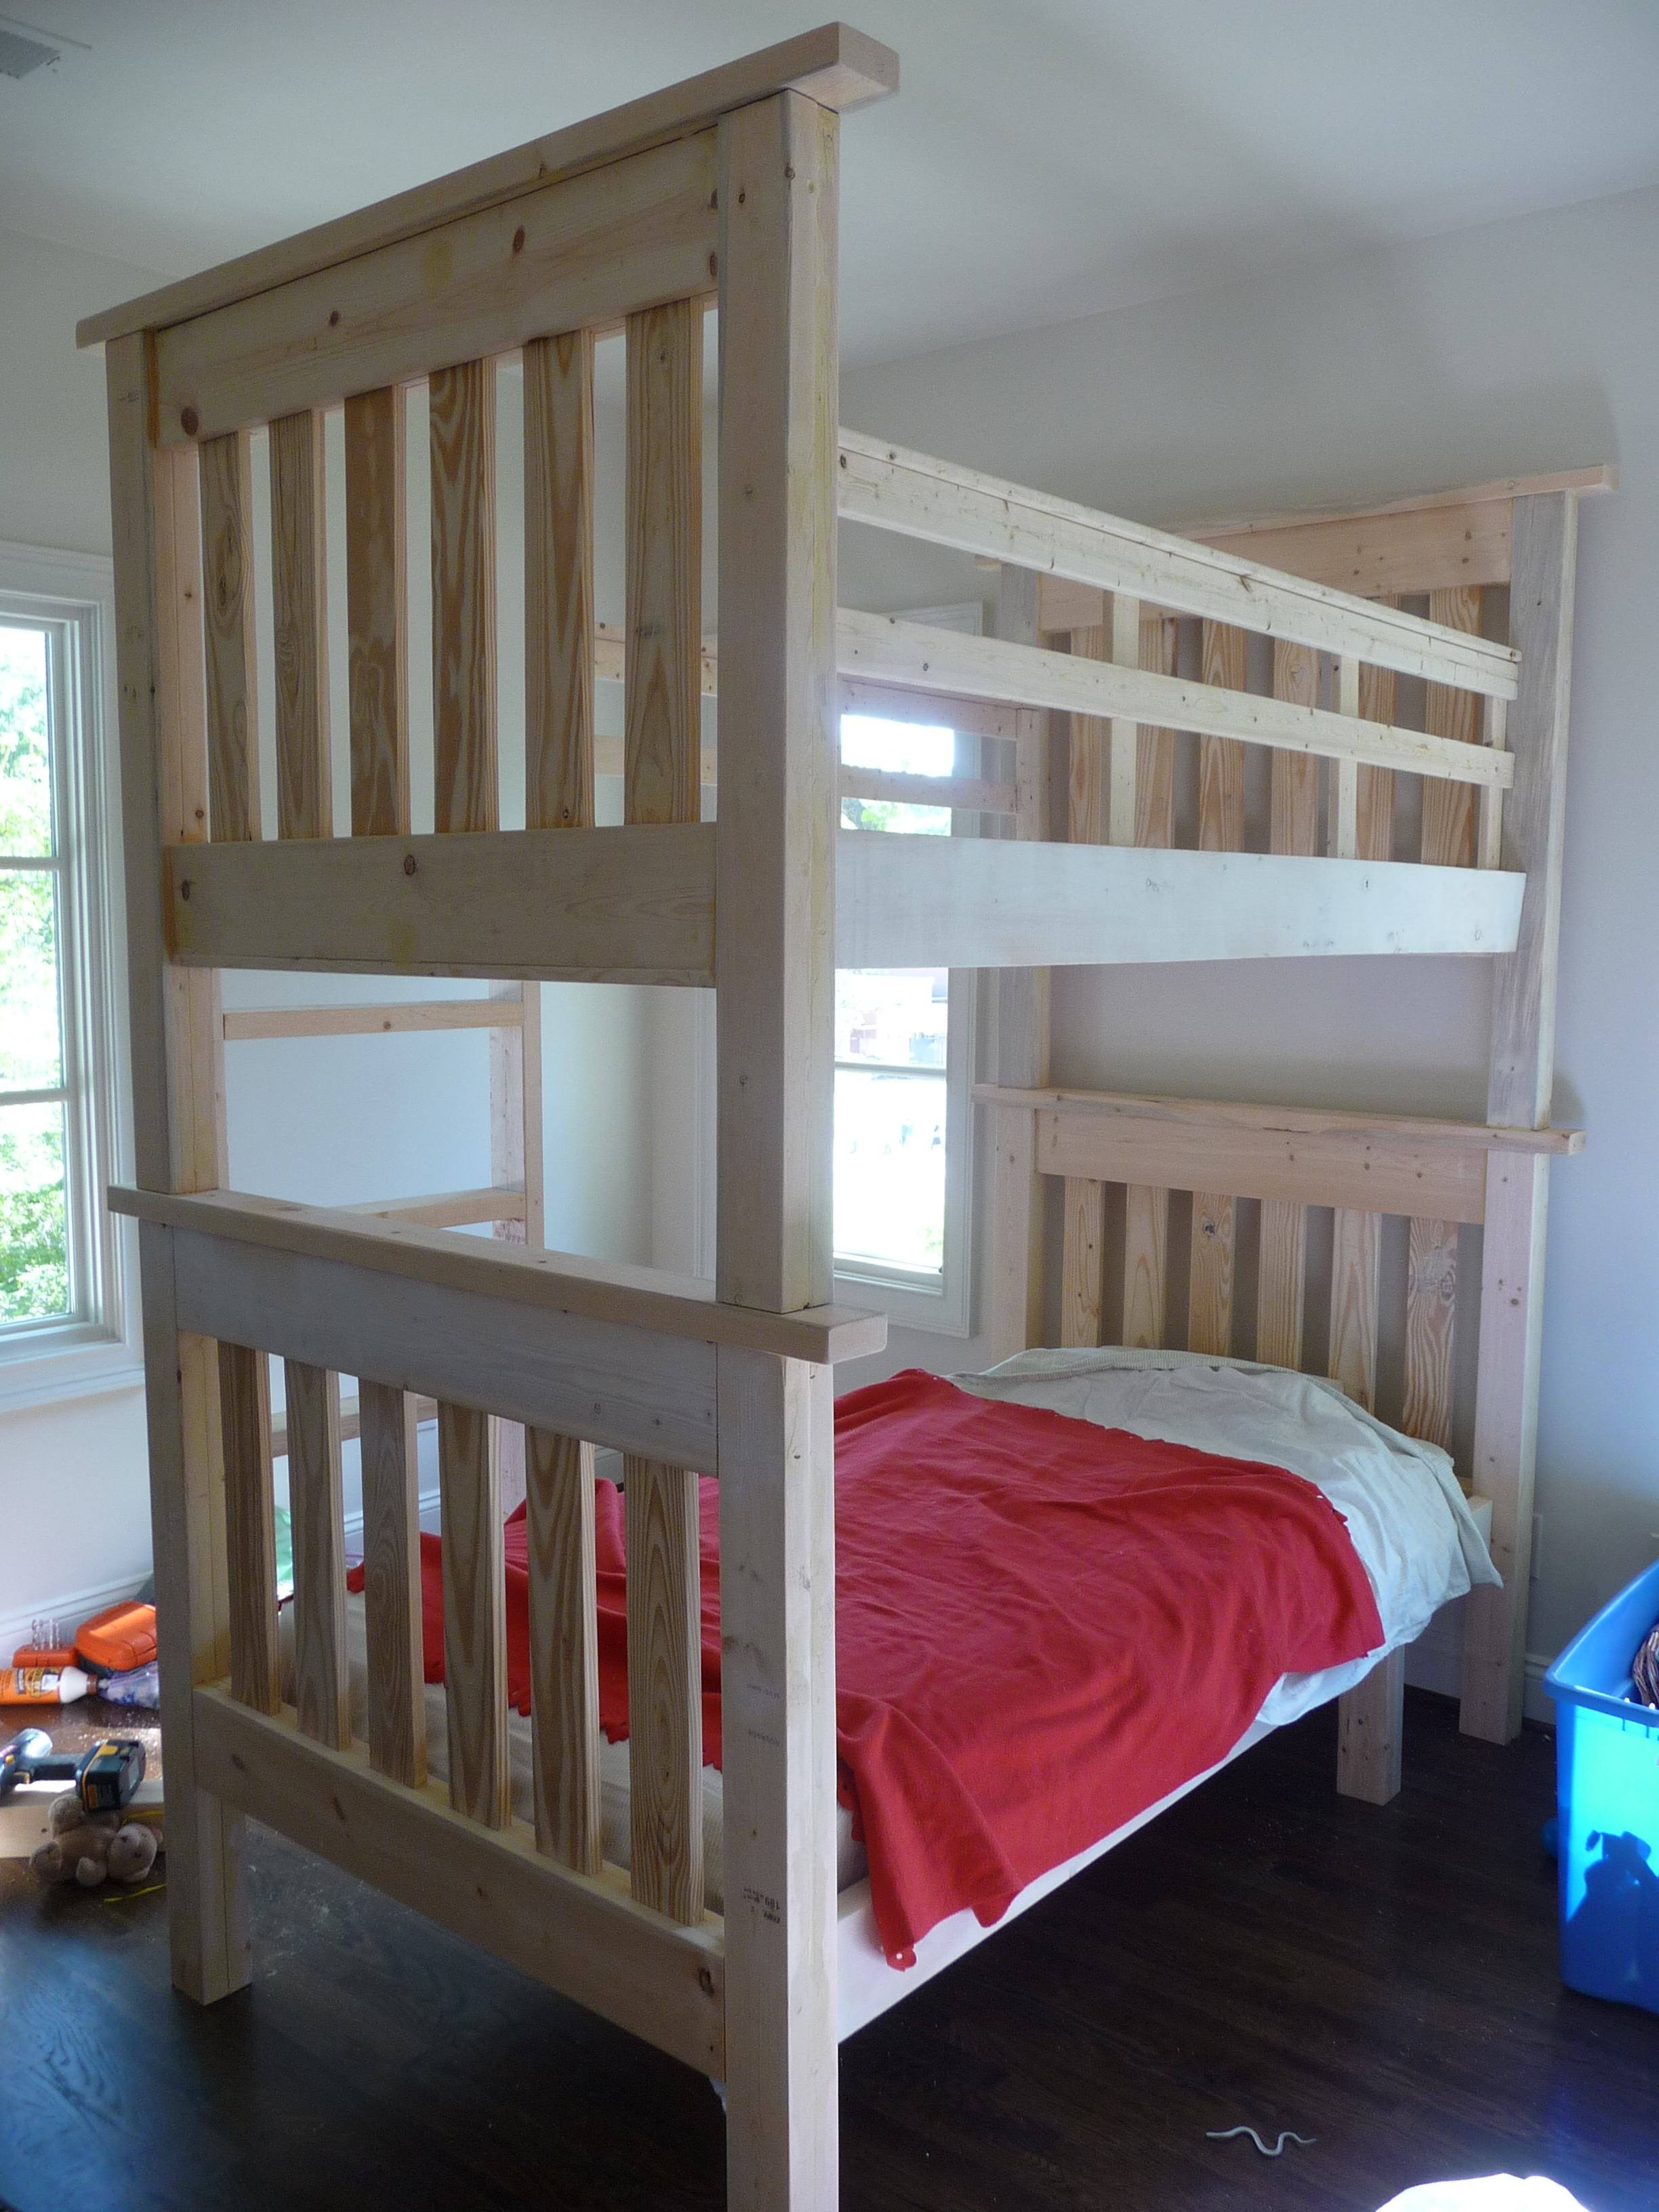 So, here I am in search of a bunk bed on the cheap and a plan ...